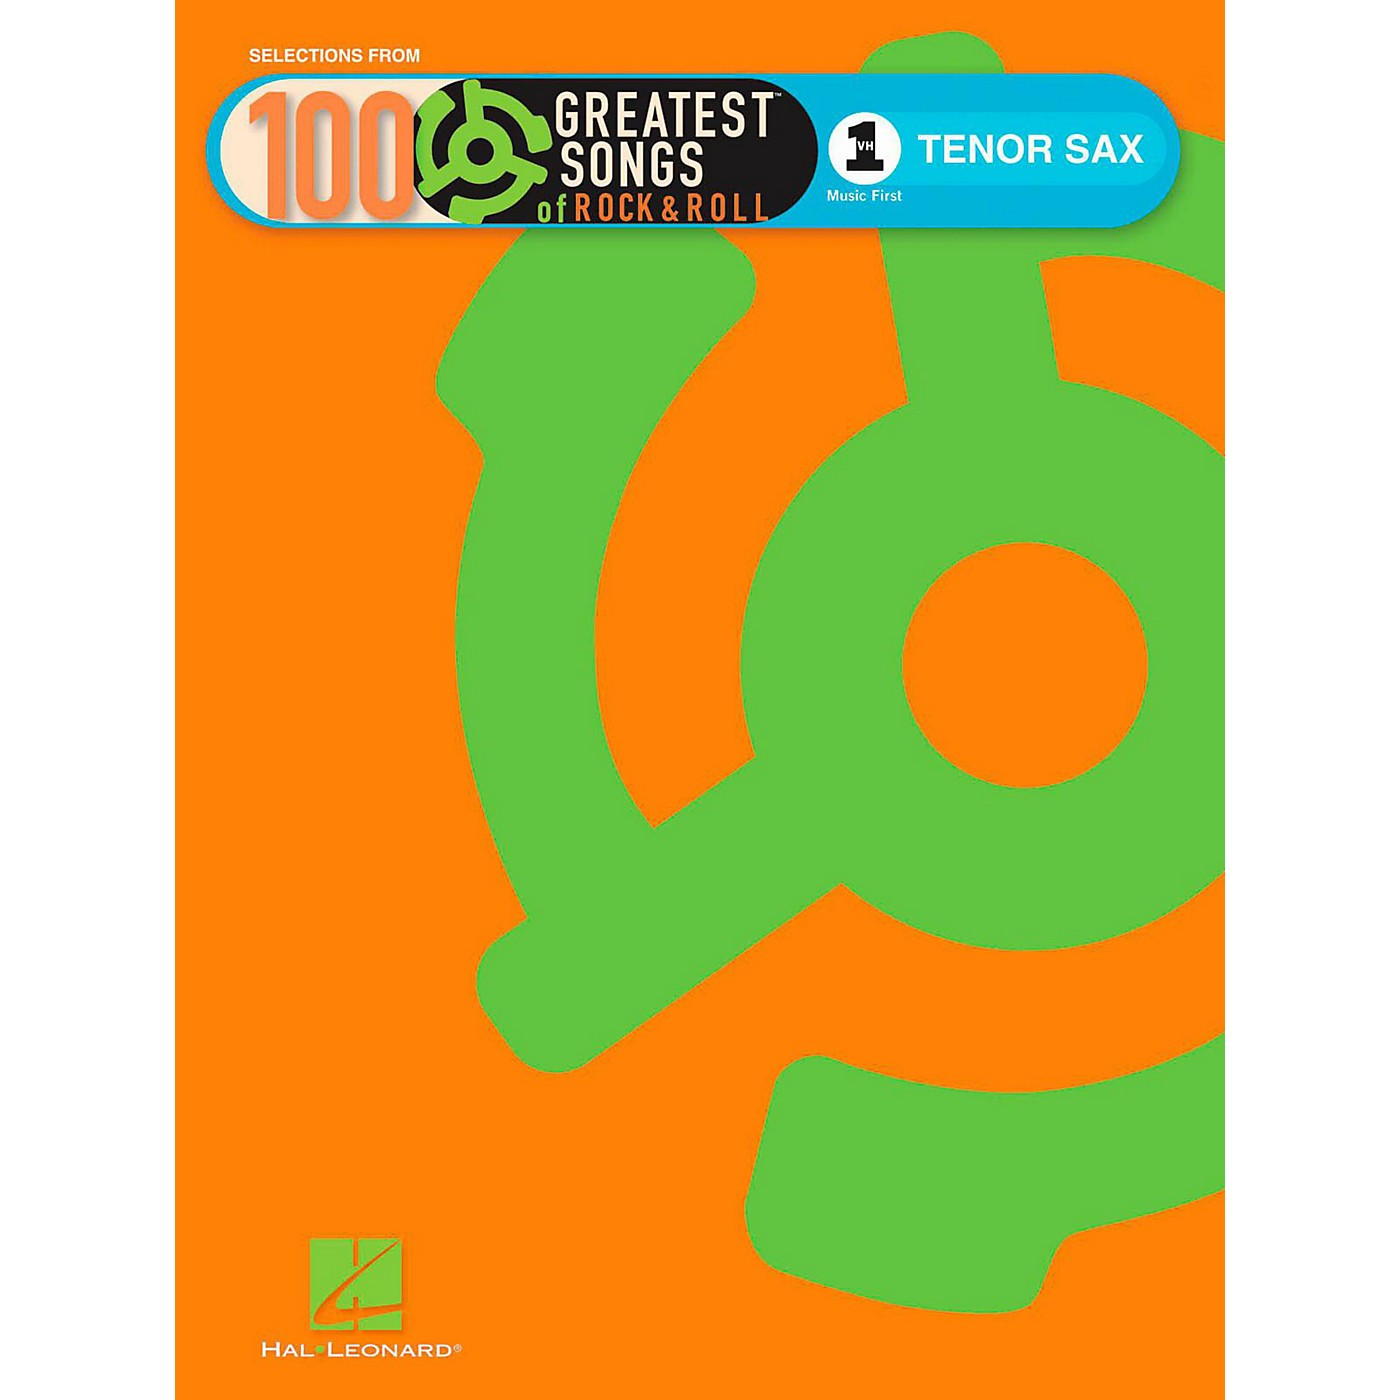 Hal Leonard VH1's 100 Greatest Songs Of Rock & Roll Tenor Sax (Book Only) thumbnail